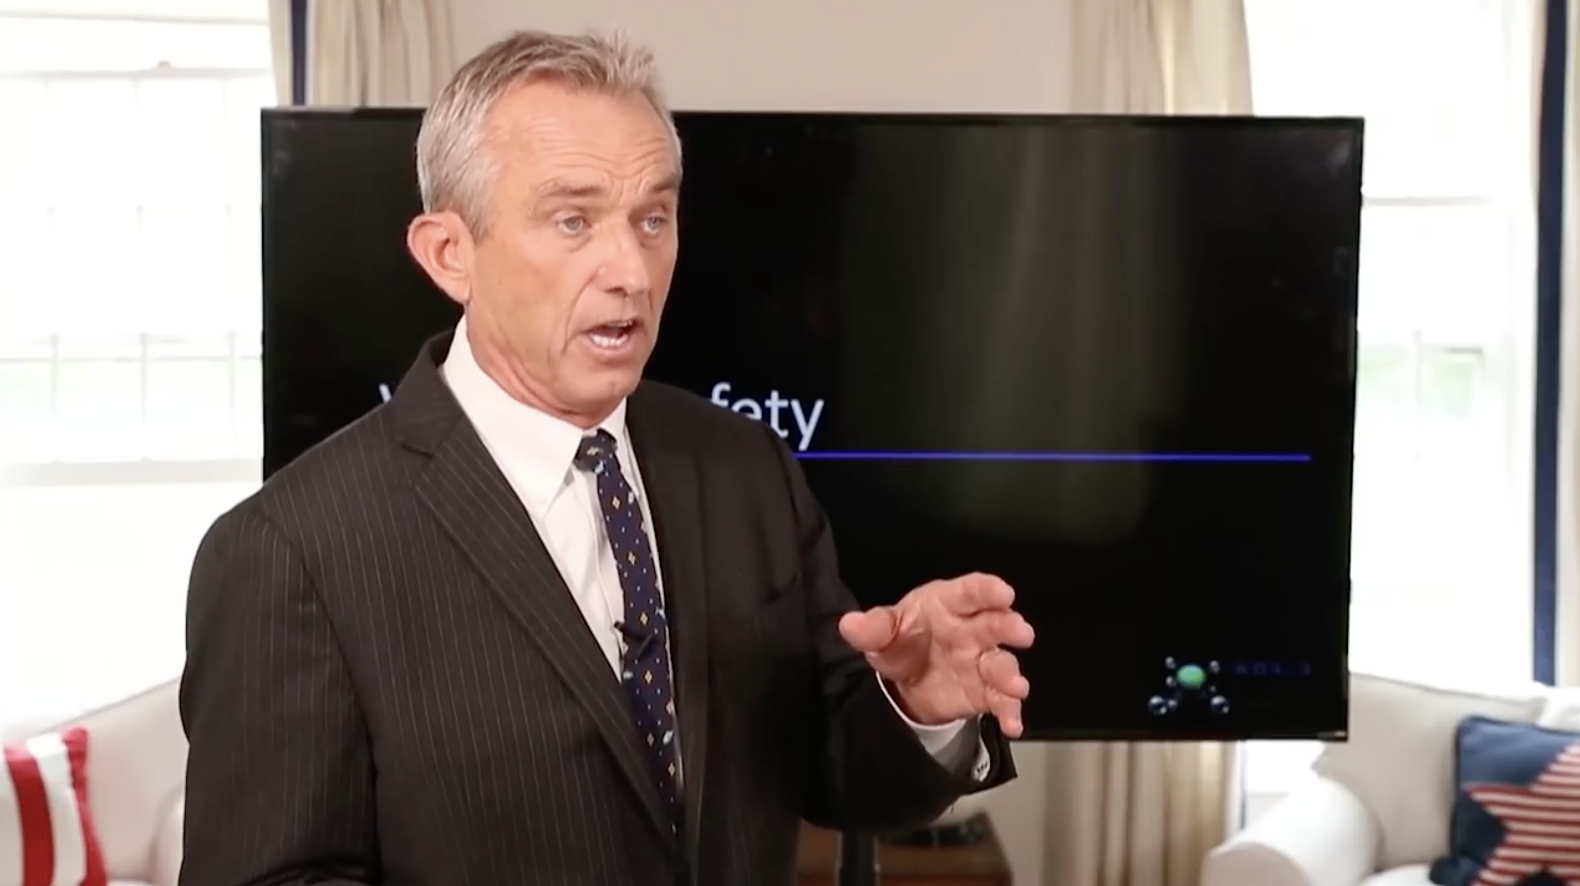 Image: Robert F. Kennedy Jr. warns that Fauci, Gates are committing mass genocide against humanity